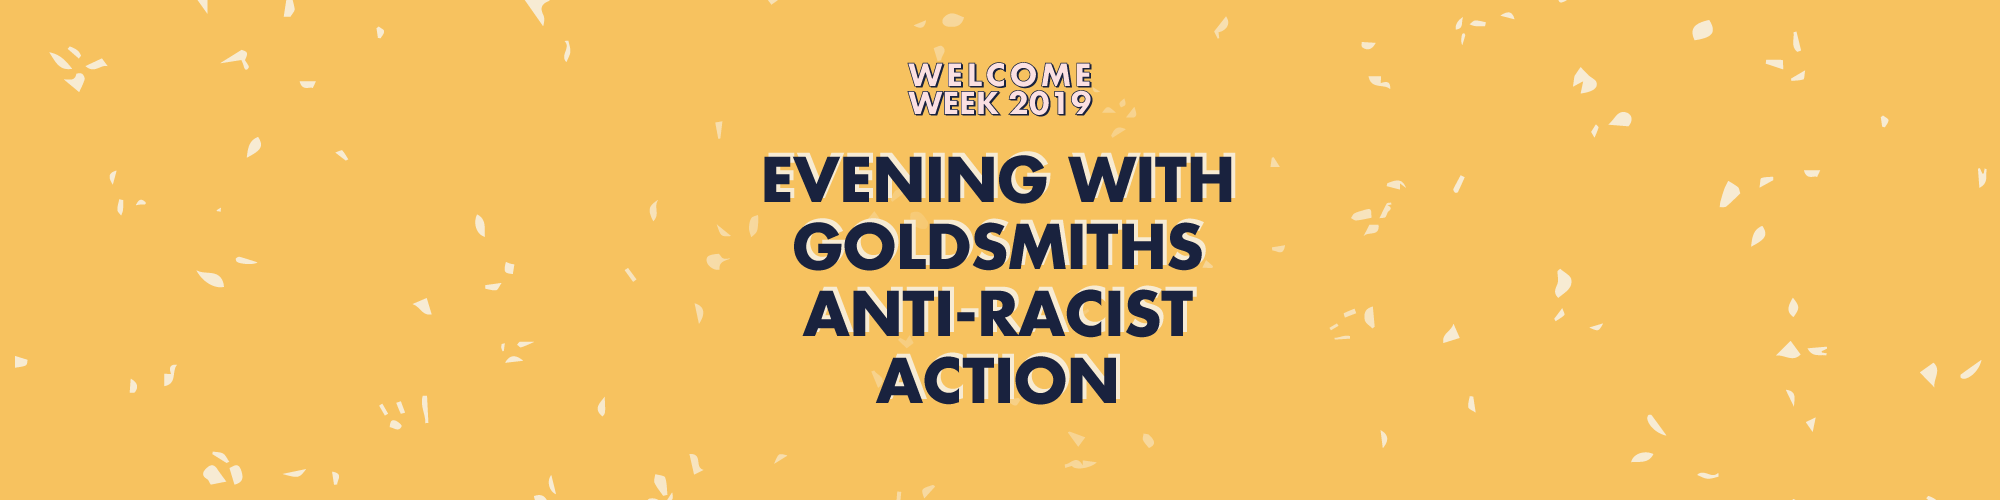 Evening with Goldsmiths Anti-Racist Action